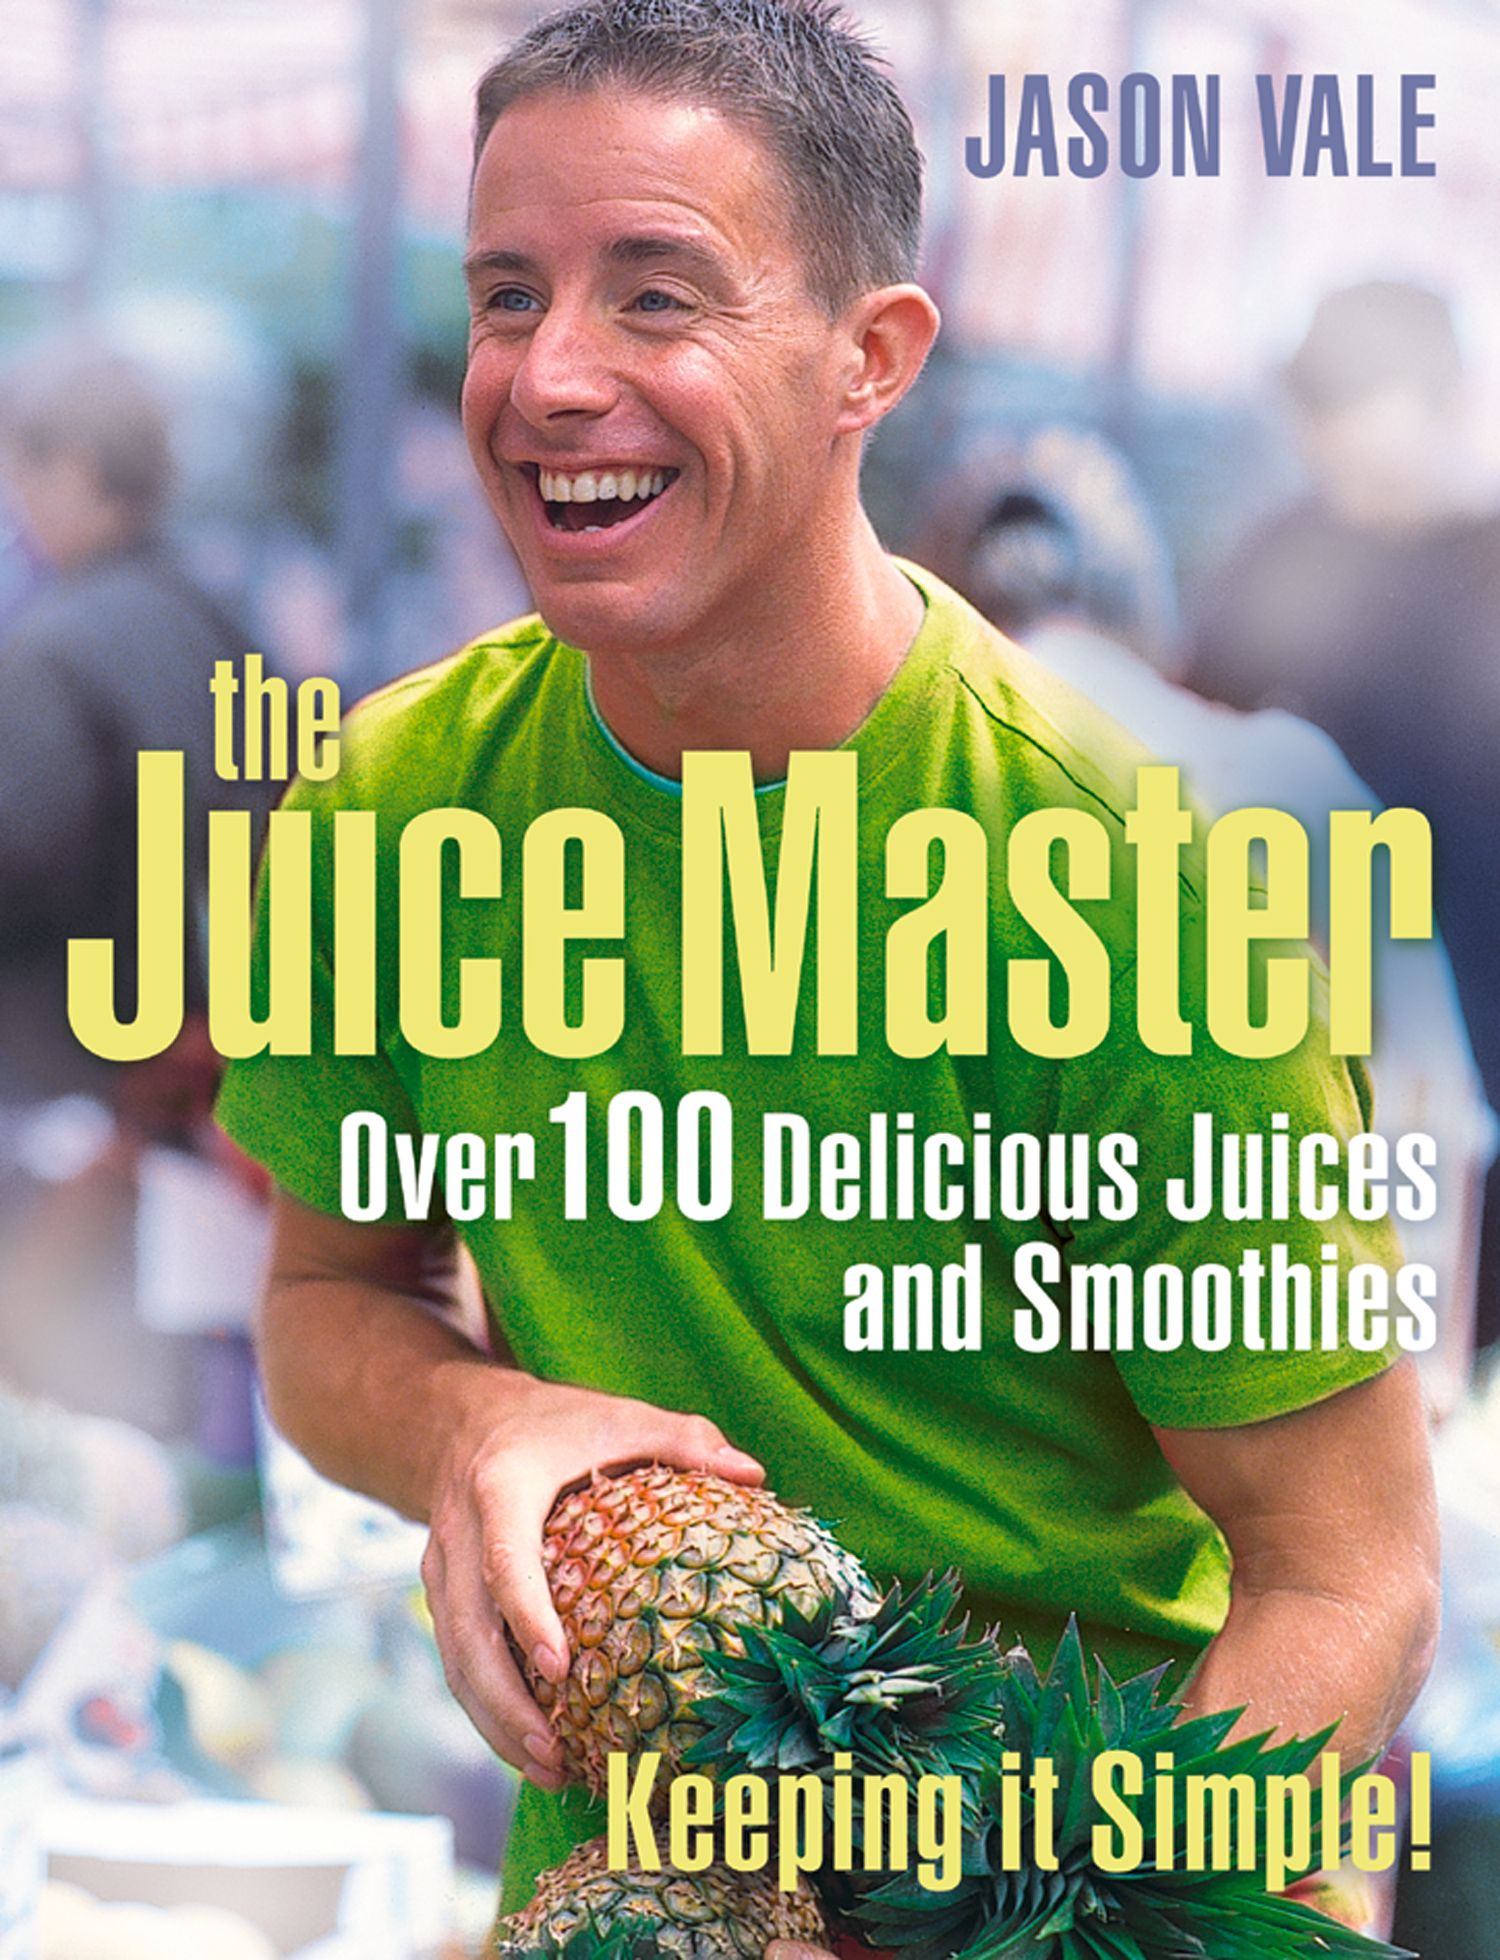 Juice Master Keeping It Simple: Over 100 Delicious Juices and Smoothies By: Jason Vale